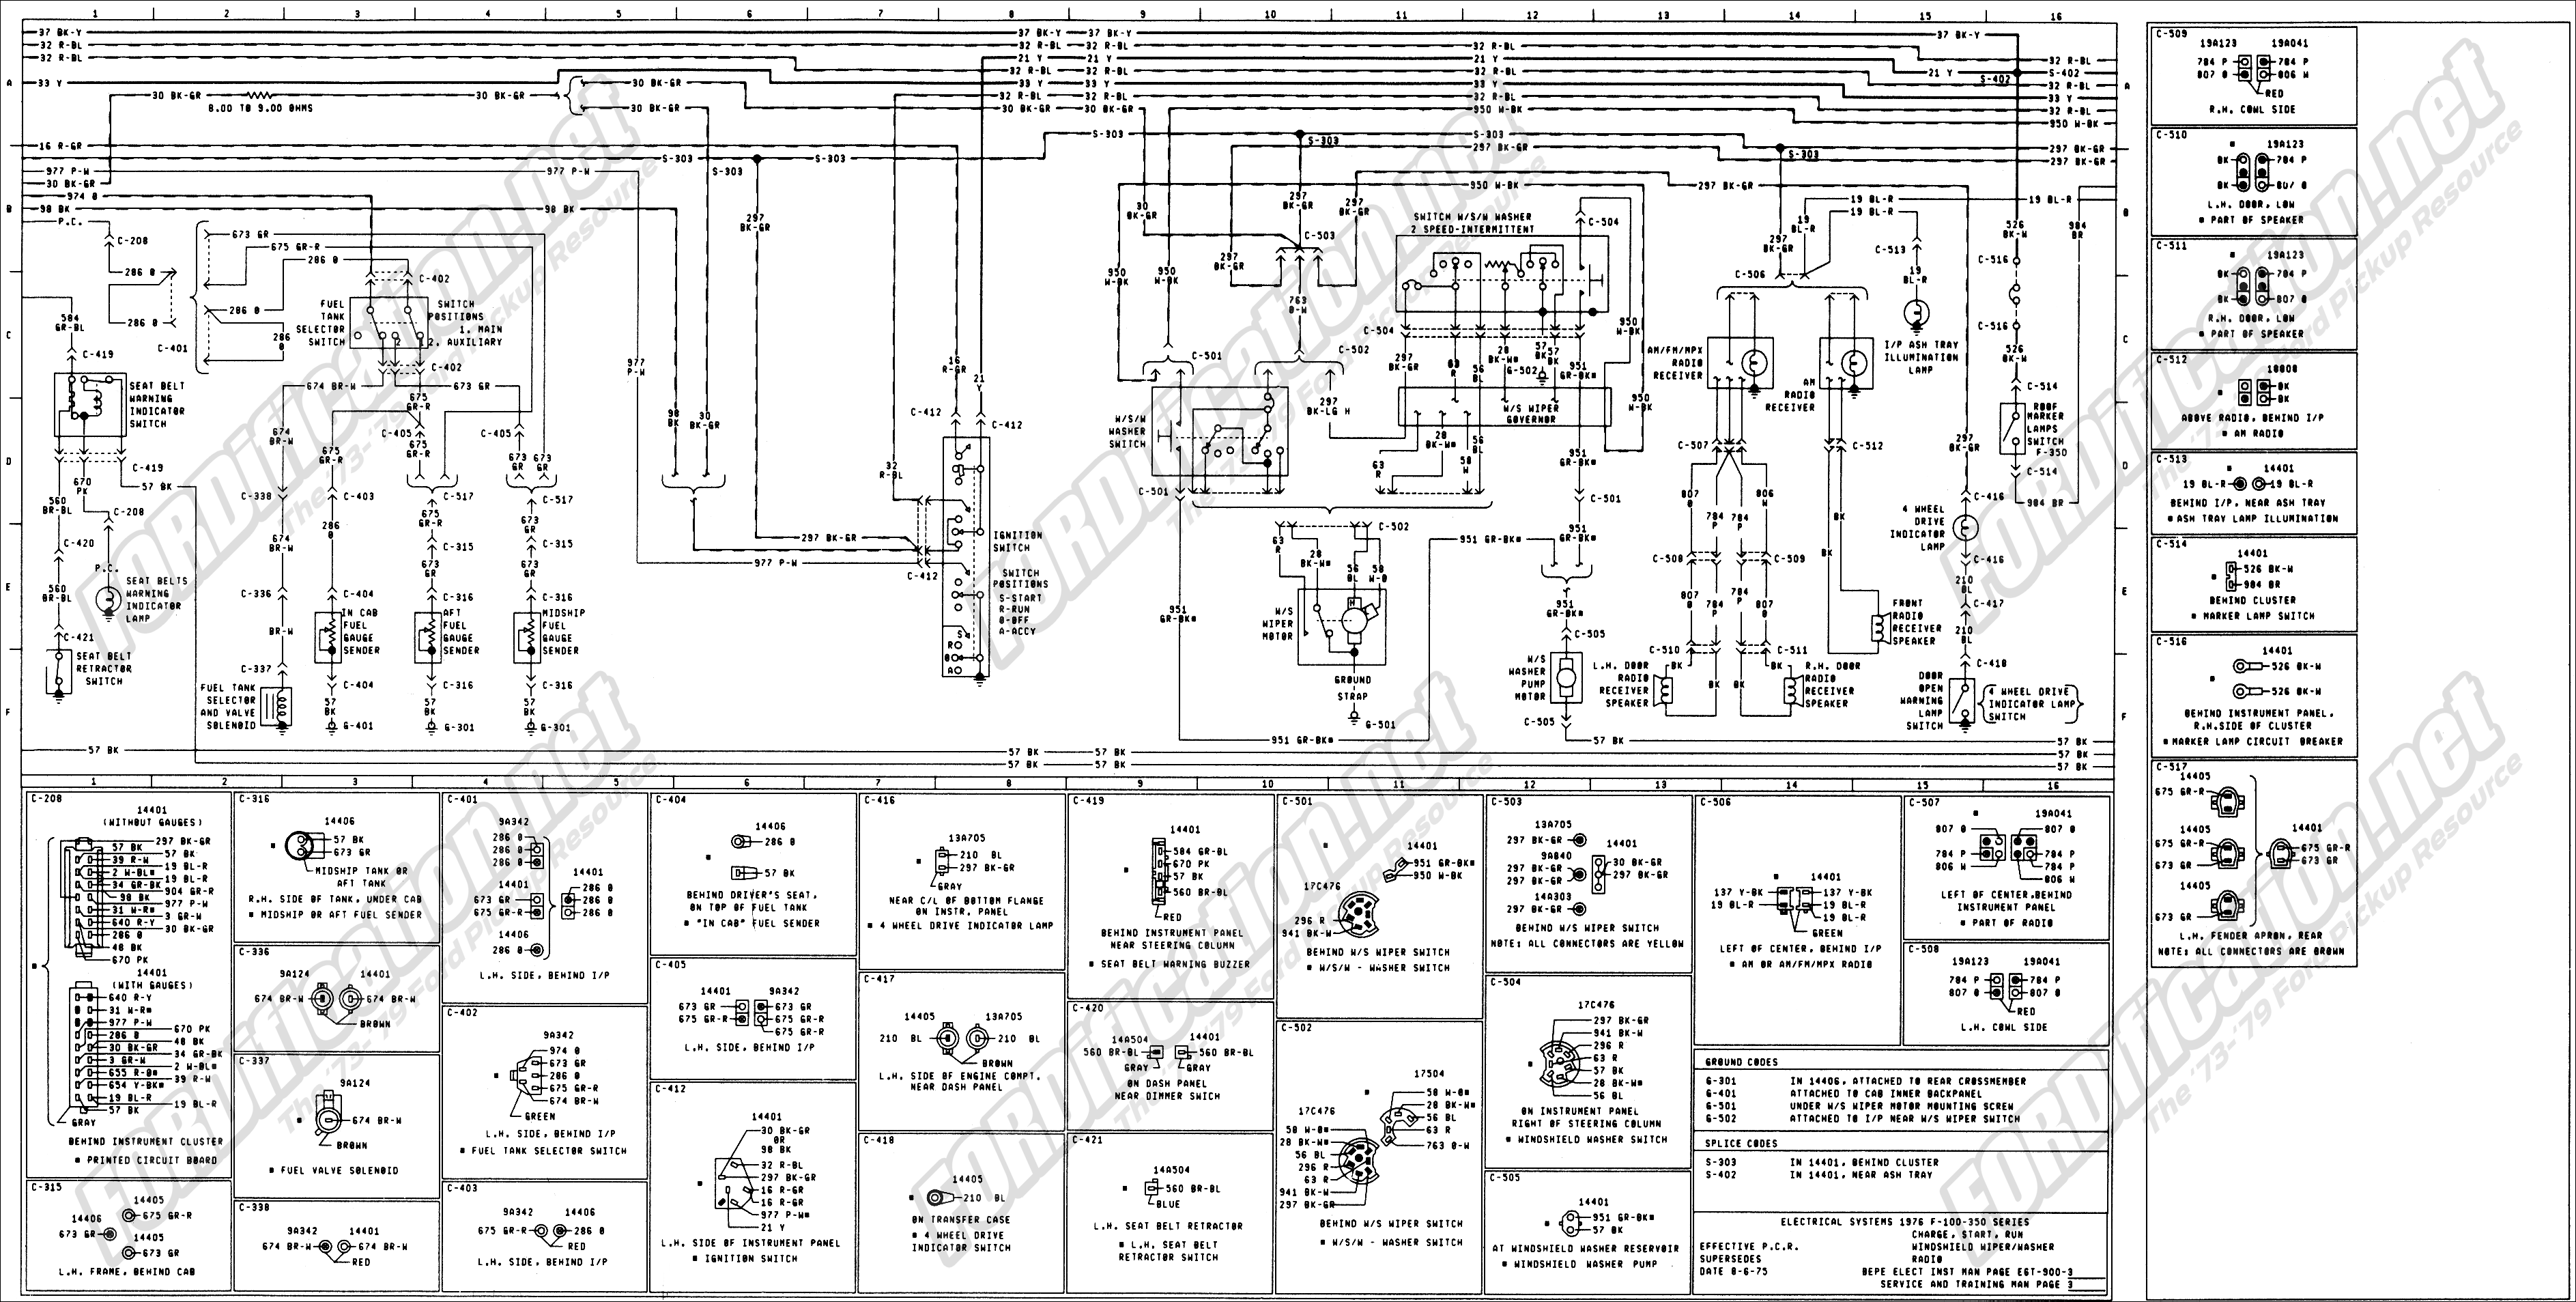 02 Ford E150 Fuse Box Diagram Wiring Schematic Auto Electrical 2008 Bmw X6 E Schematics Diagrams F 1973